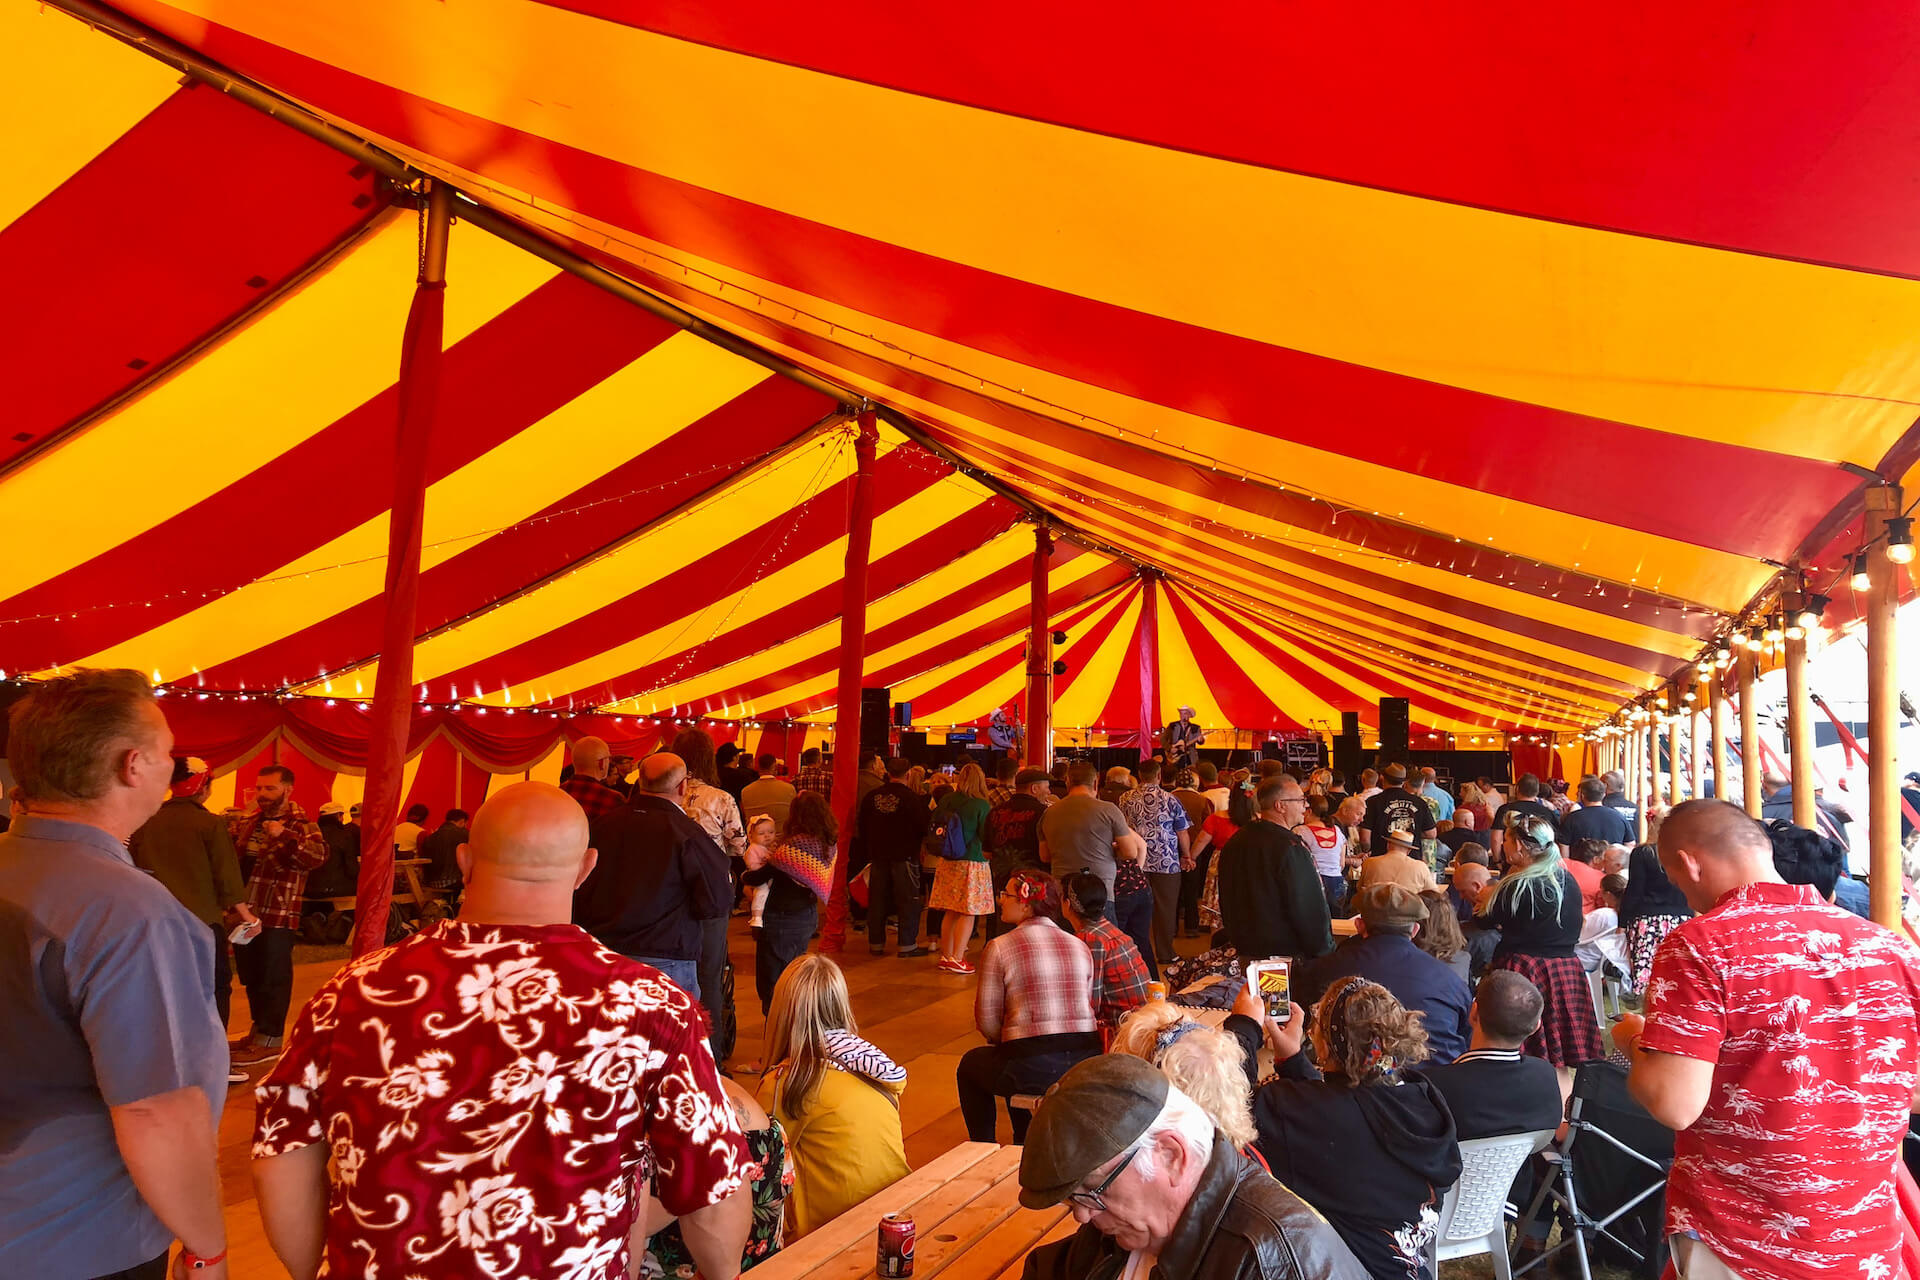 Inside marquee stage venue at Atomic Vintage Festival